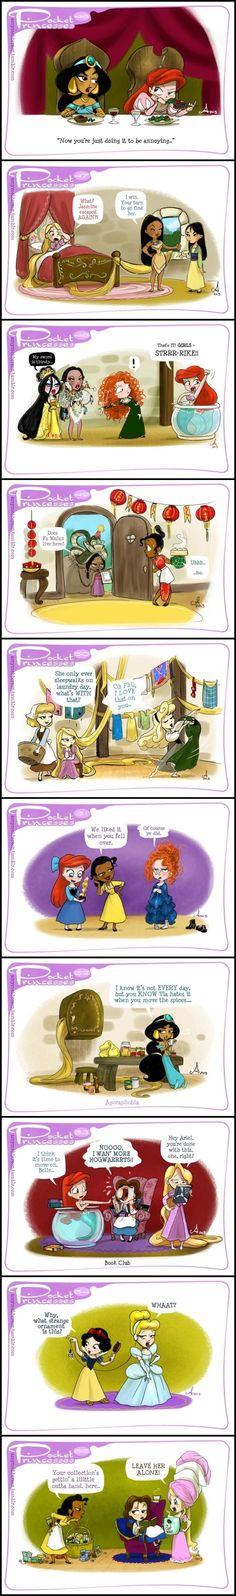 Pocket Princesses (Part 5) by Amy Mebberson by cristina_1128